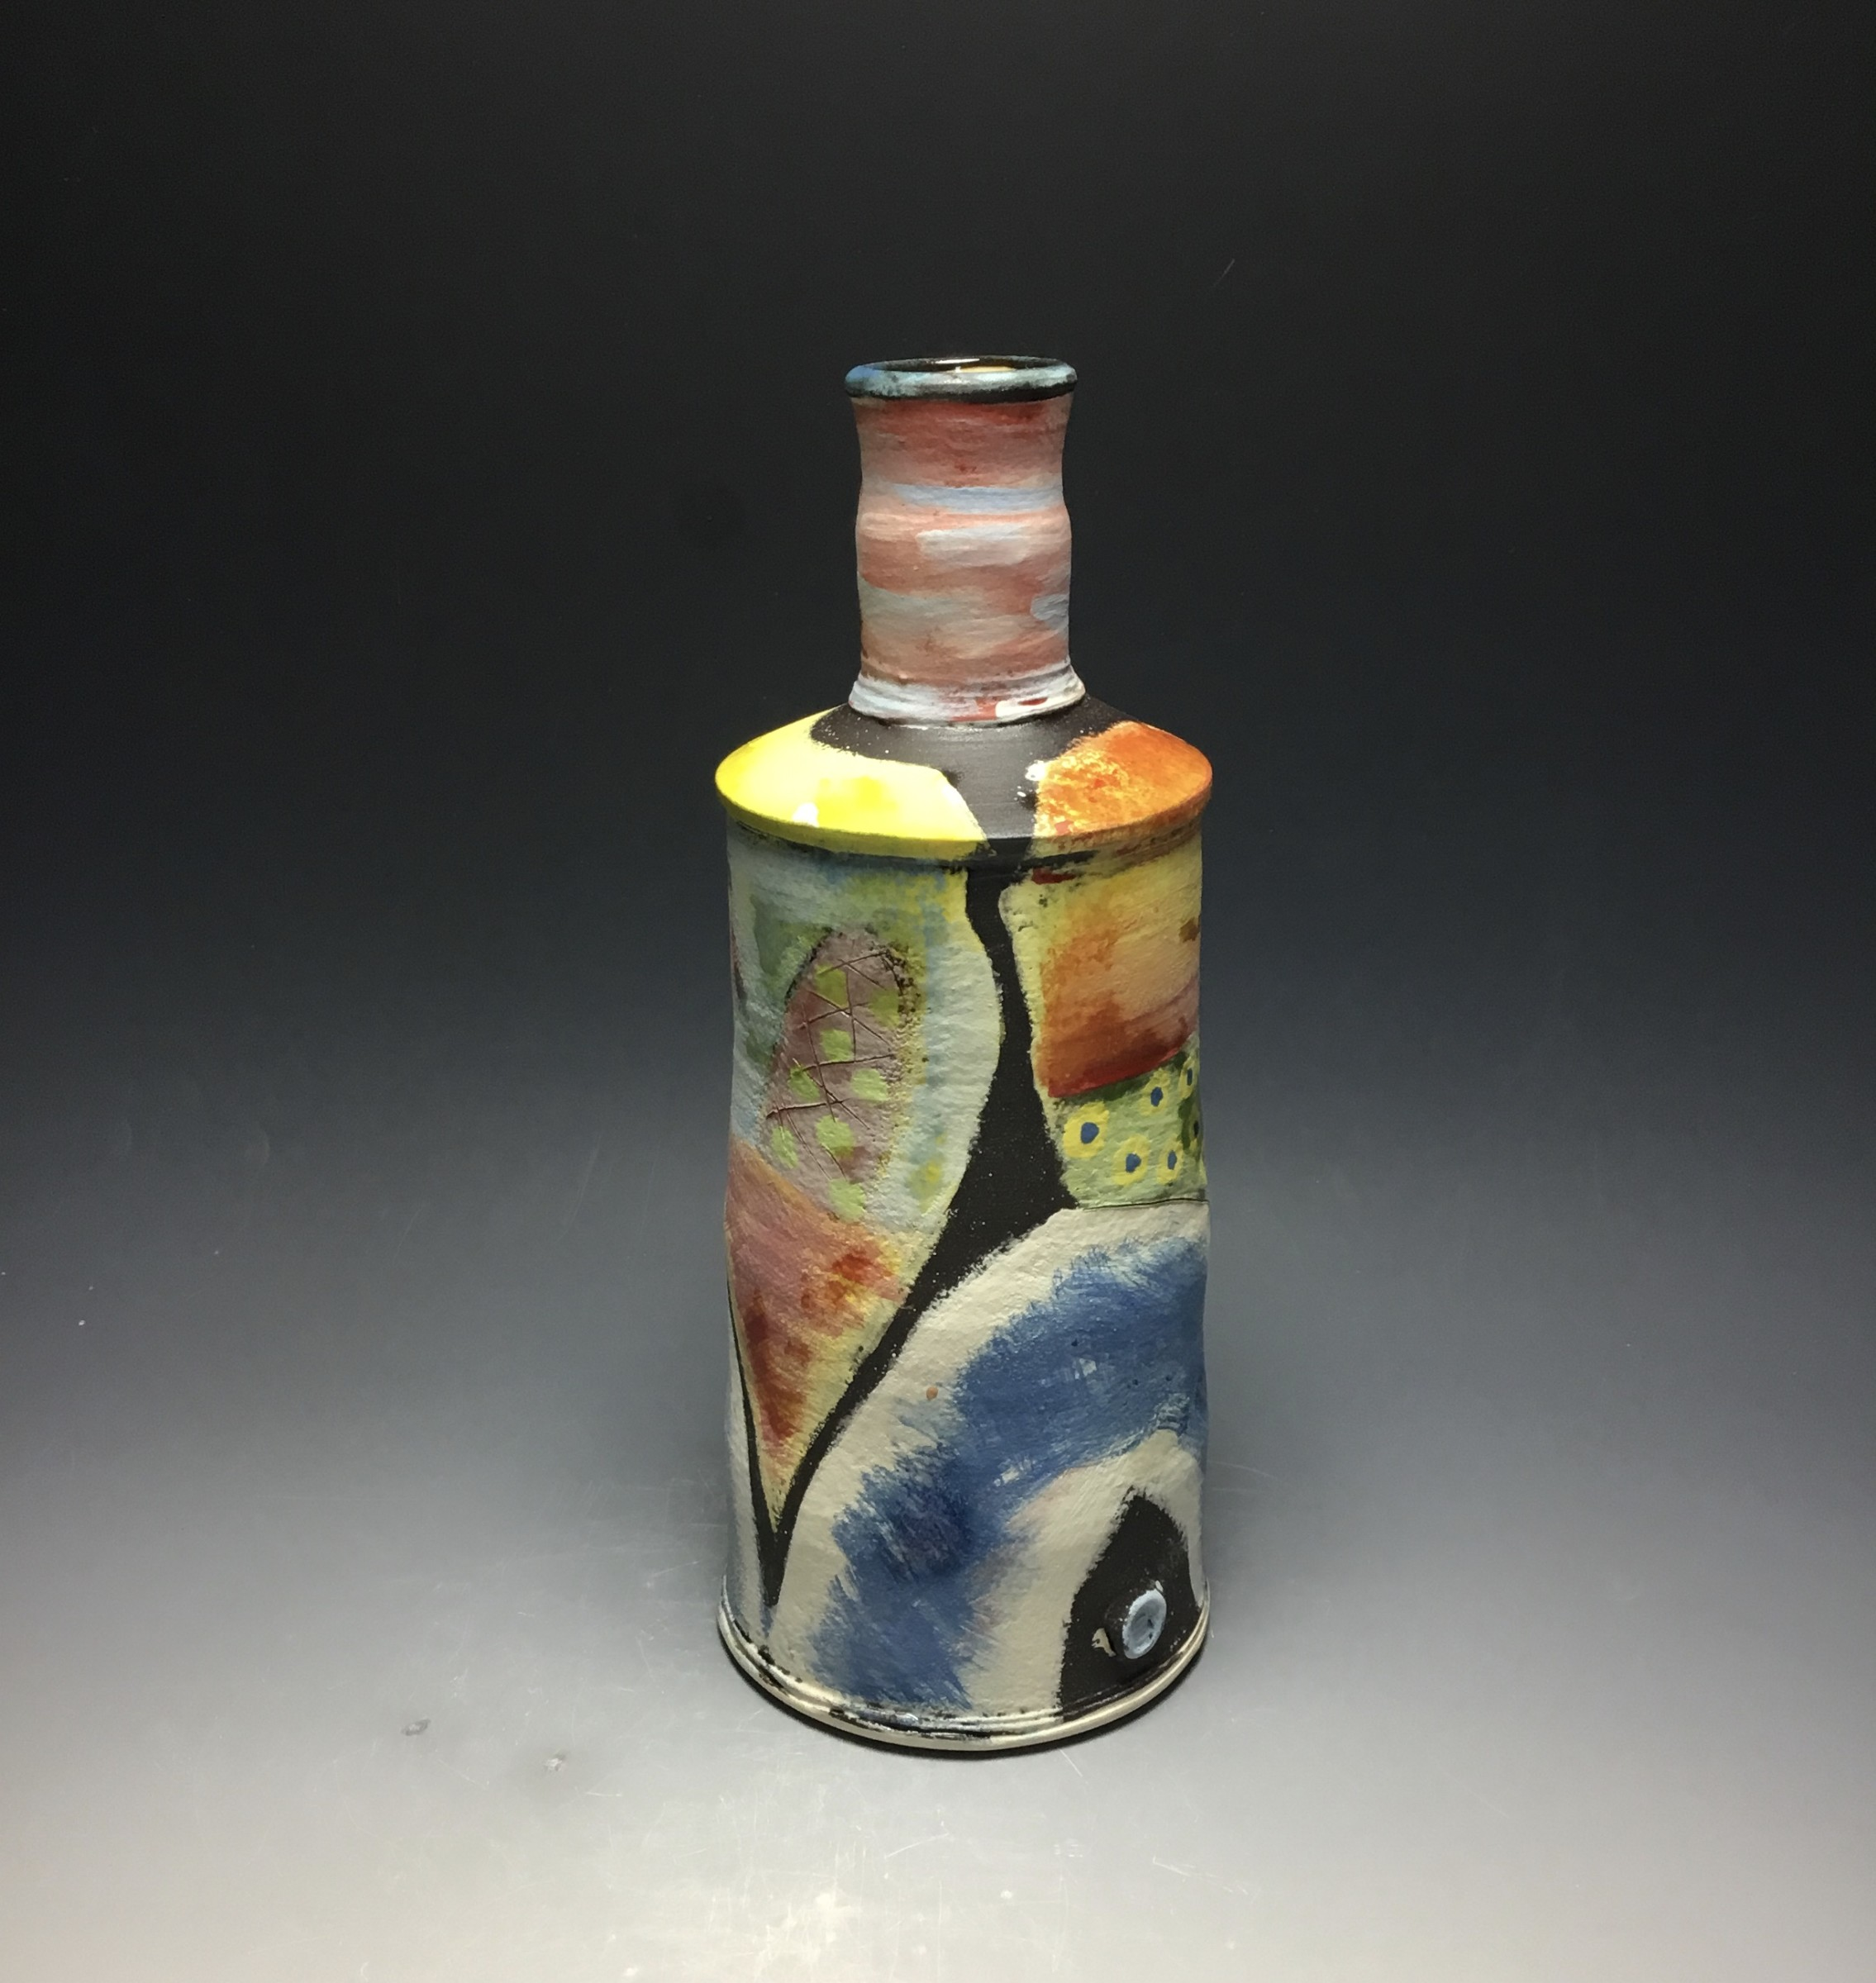 "<span class=""link fancybox-details-link""><a href=""/artists/100-john-pollex/works/6834-john-pollex-tall-bottle-2020/"">View Detail Page</a></span><div class=""artist""><strong>John Pollex</strong></div> <div class=""title""><em>Tall Bottle</em>, 2020</div> <div class=""medium"">Earthenware</div> <div class=""dimensions"">h. 11in</div><div class=""price"">£440.00</div><div class=""copyright_line"">Copyright The Artist</div>"